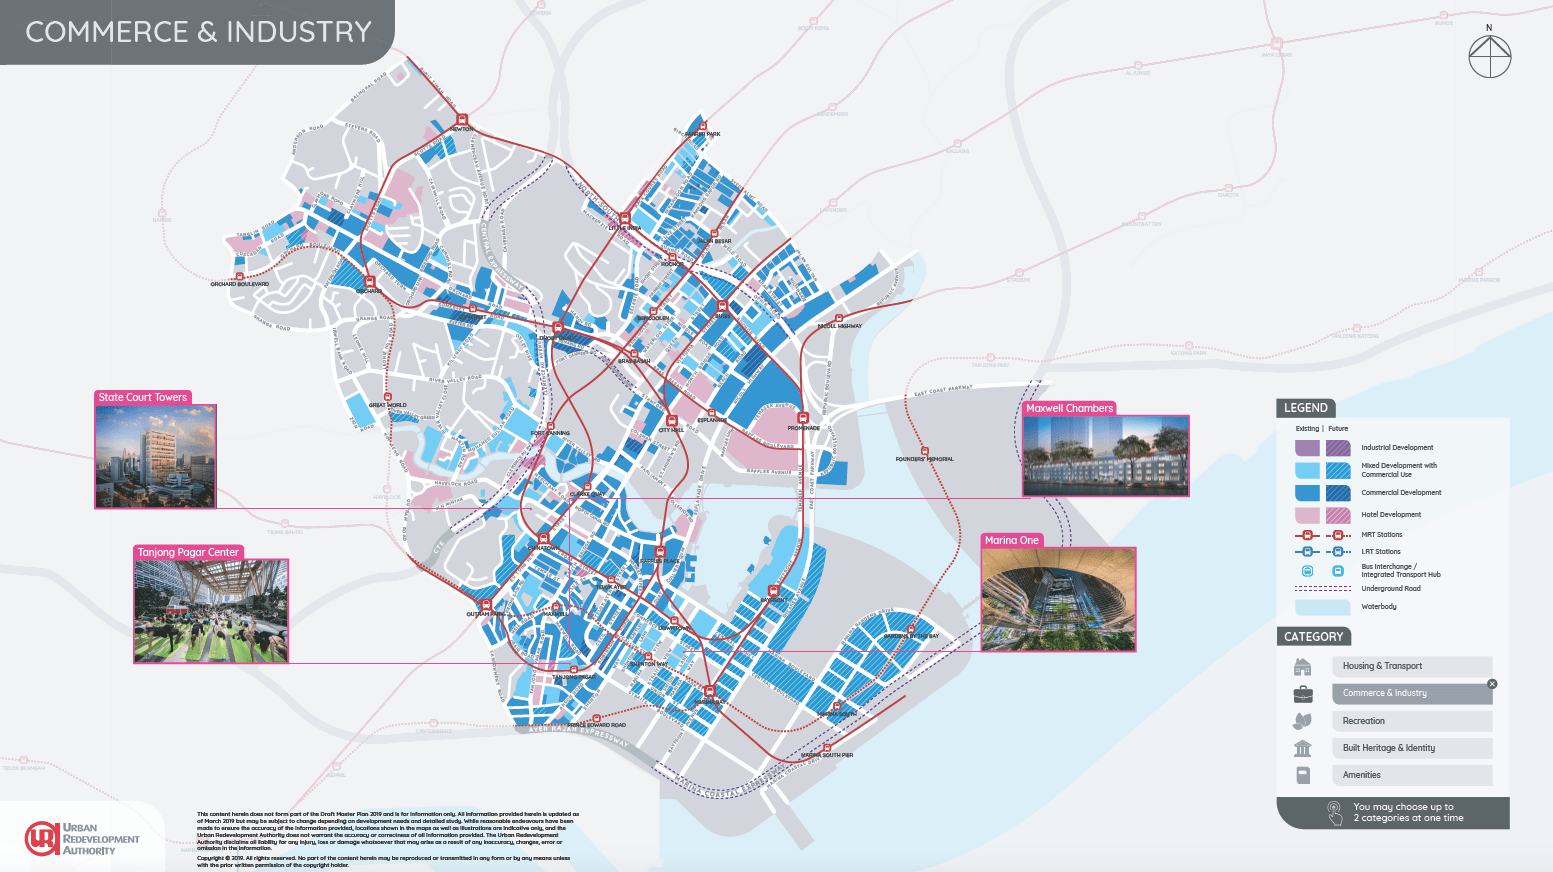 central-area-illustrated-plans-commerce-and-industry